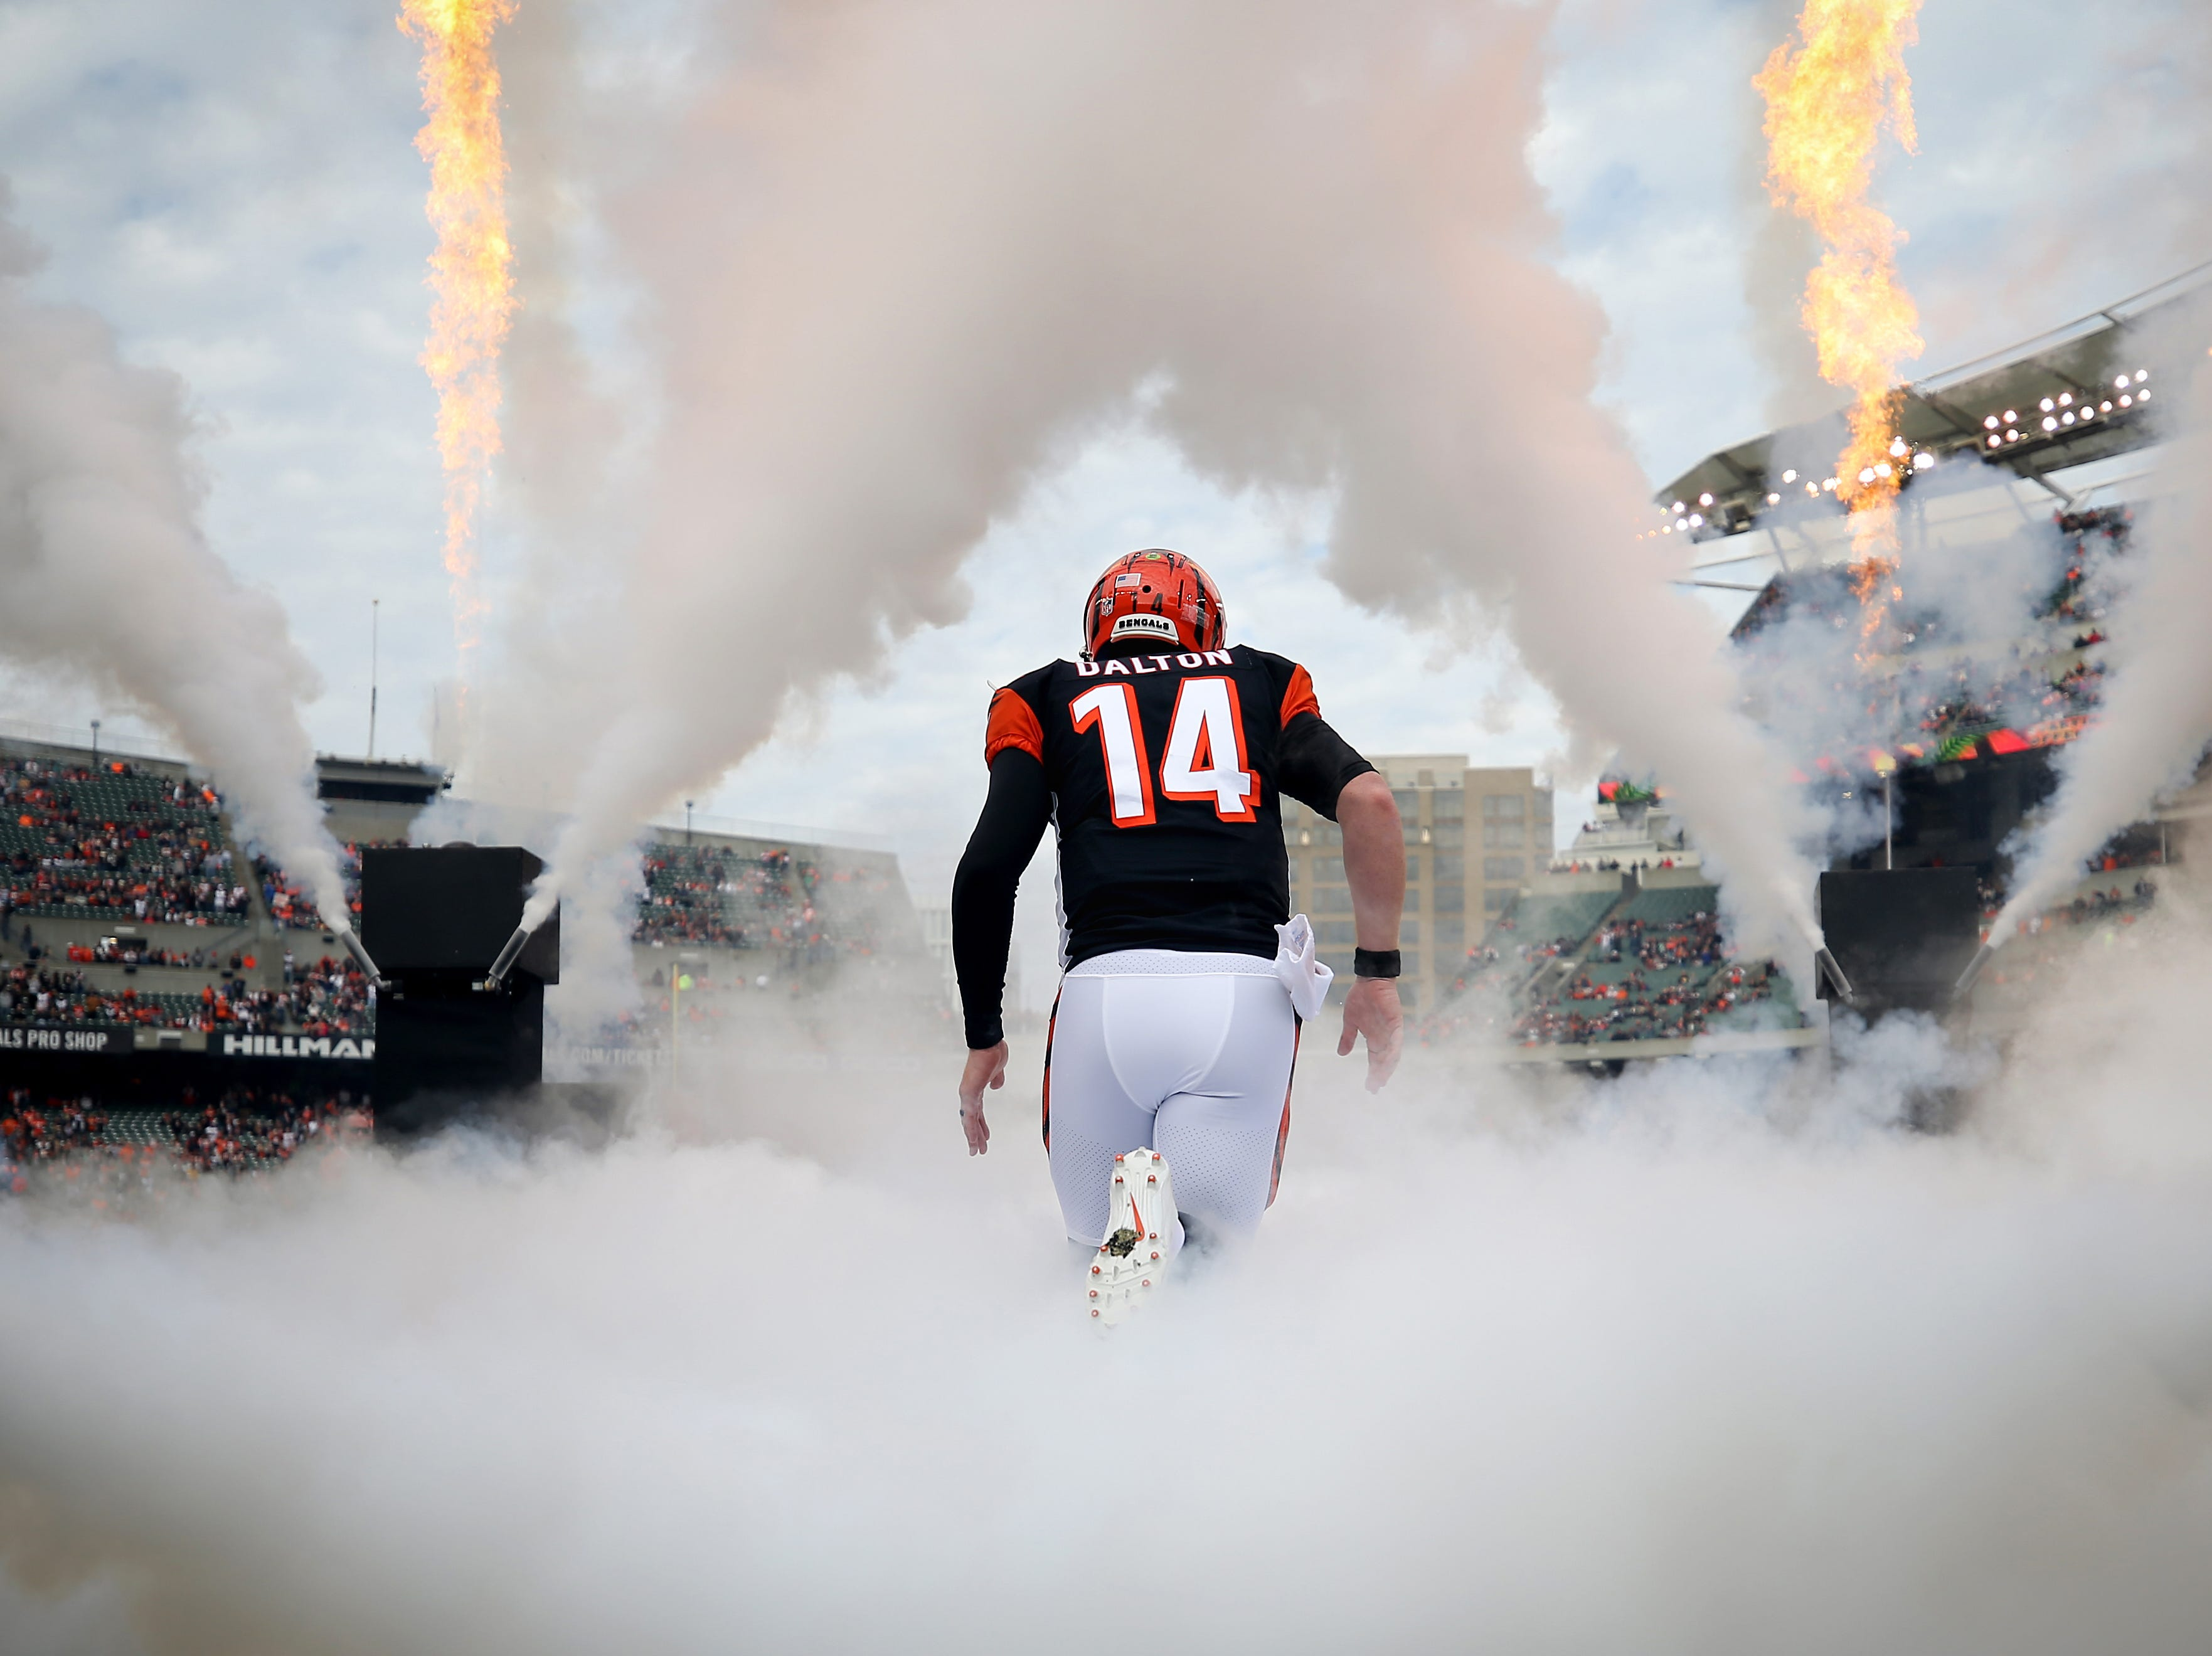 I've been trying to make this photo for a few seasons now, something crisp and iconic of Cincinnati Bengals quarterback Andy Dalton taking the field. The challenge of making this photo, captured before the Week 12 game, is that there are so many people around this area at that moment – other photographers, sideline security, pyrotechnic people and fans with sideline passes. Still, I managed to capture a symmetrical picture of only Dalton.